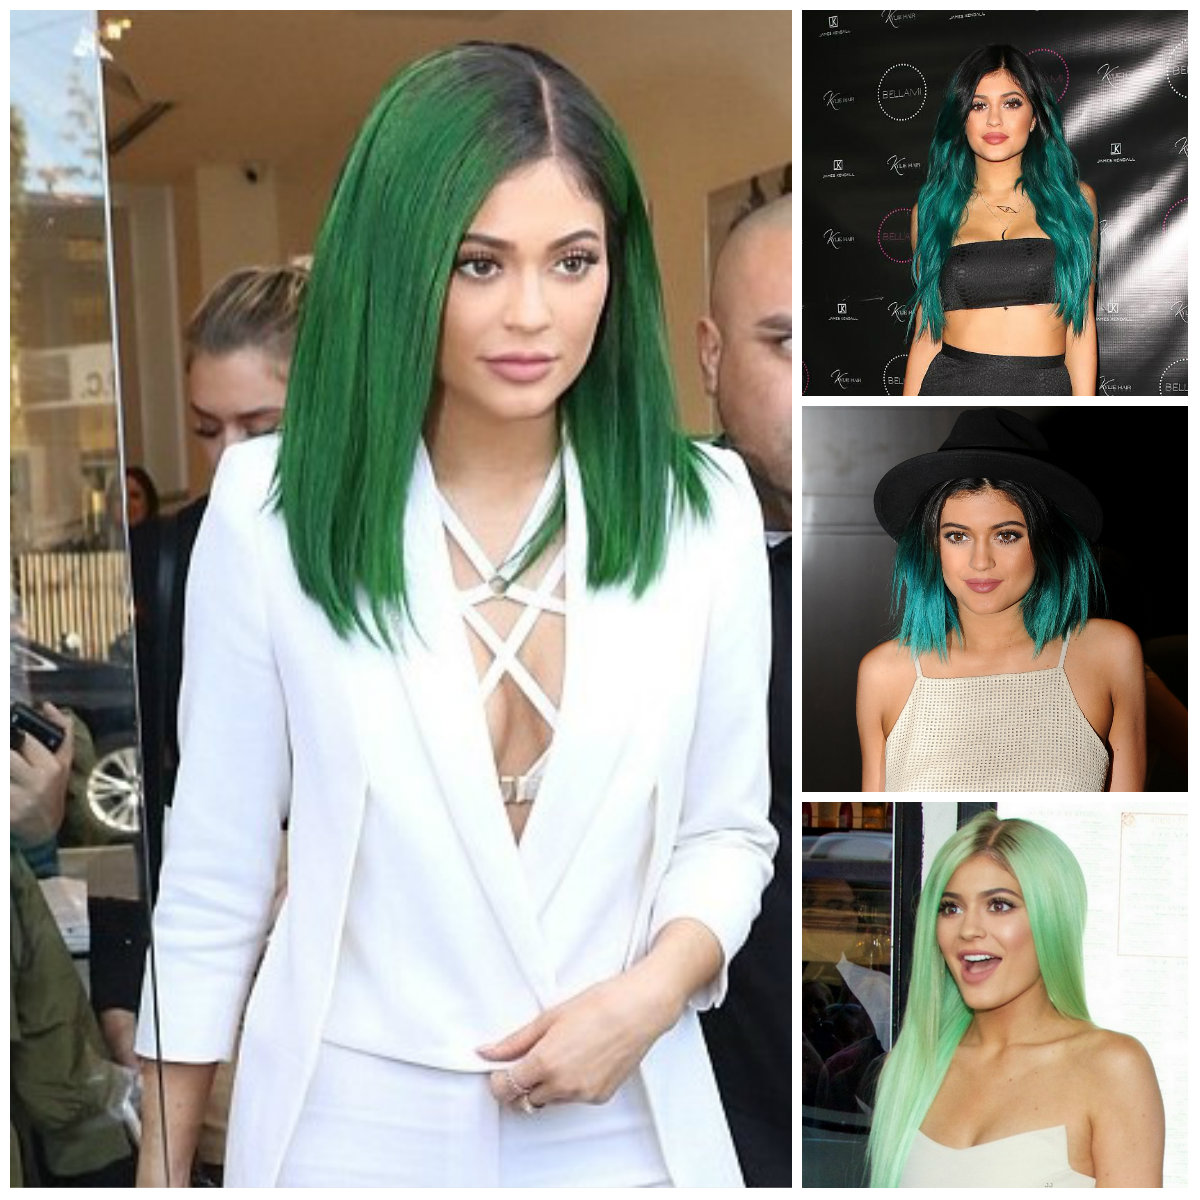 kylie jenner green hair colors 2016 - Copy